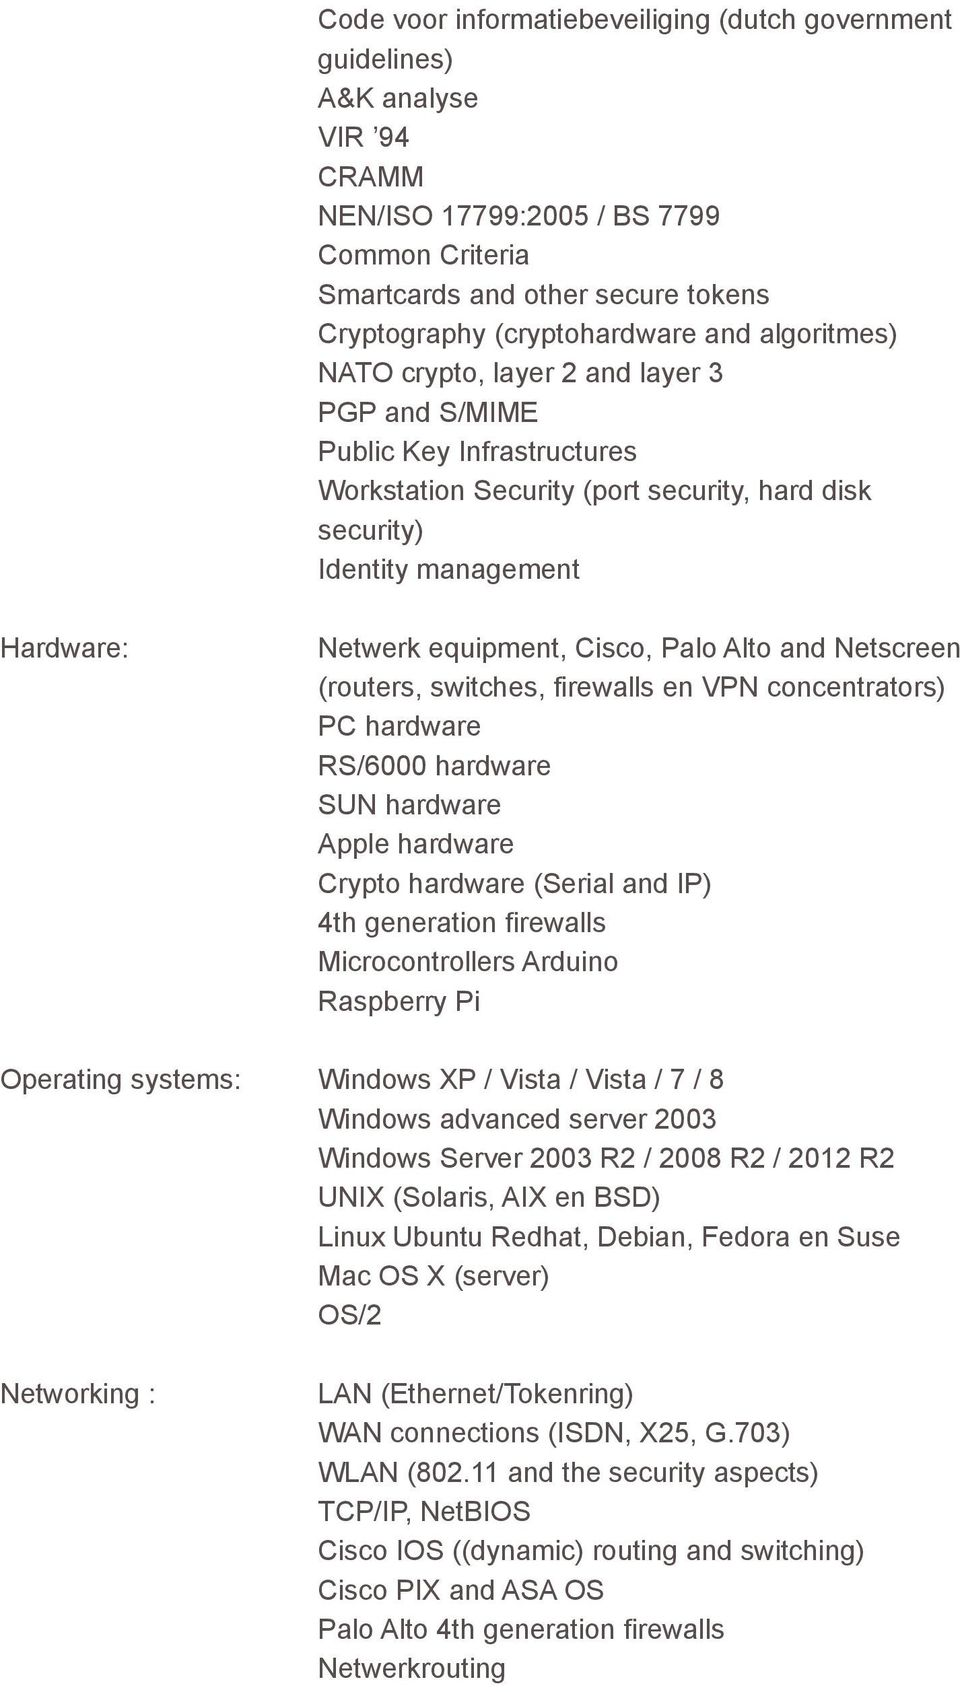 equipment, Cisco, Palo Alto and Netscreen (routers, switches, firewalls en VPN concentrators) PC hardware RS/6000 hardware SUN hardware Apple hardware Crypto hardware (Serial and IP) 4th generation